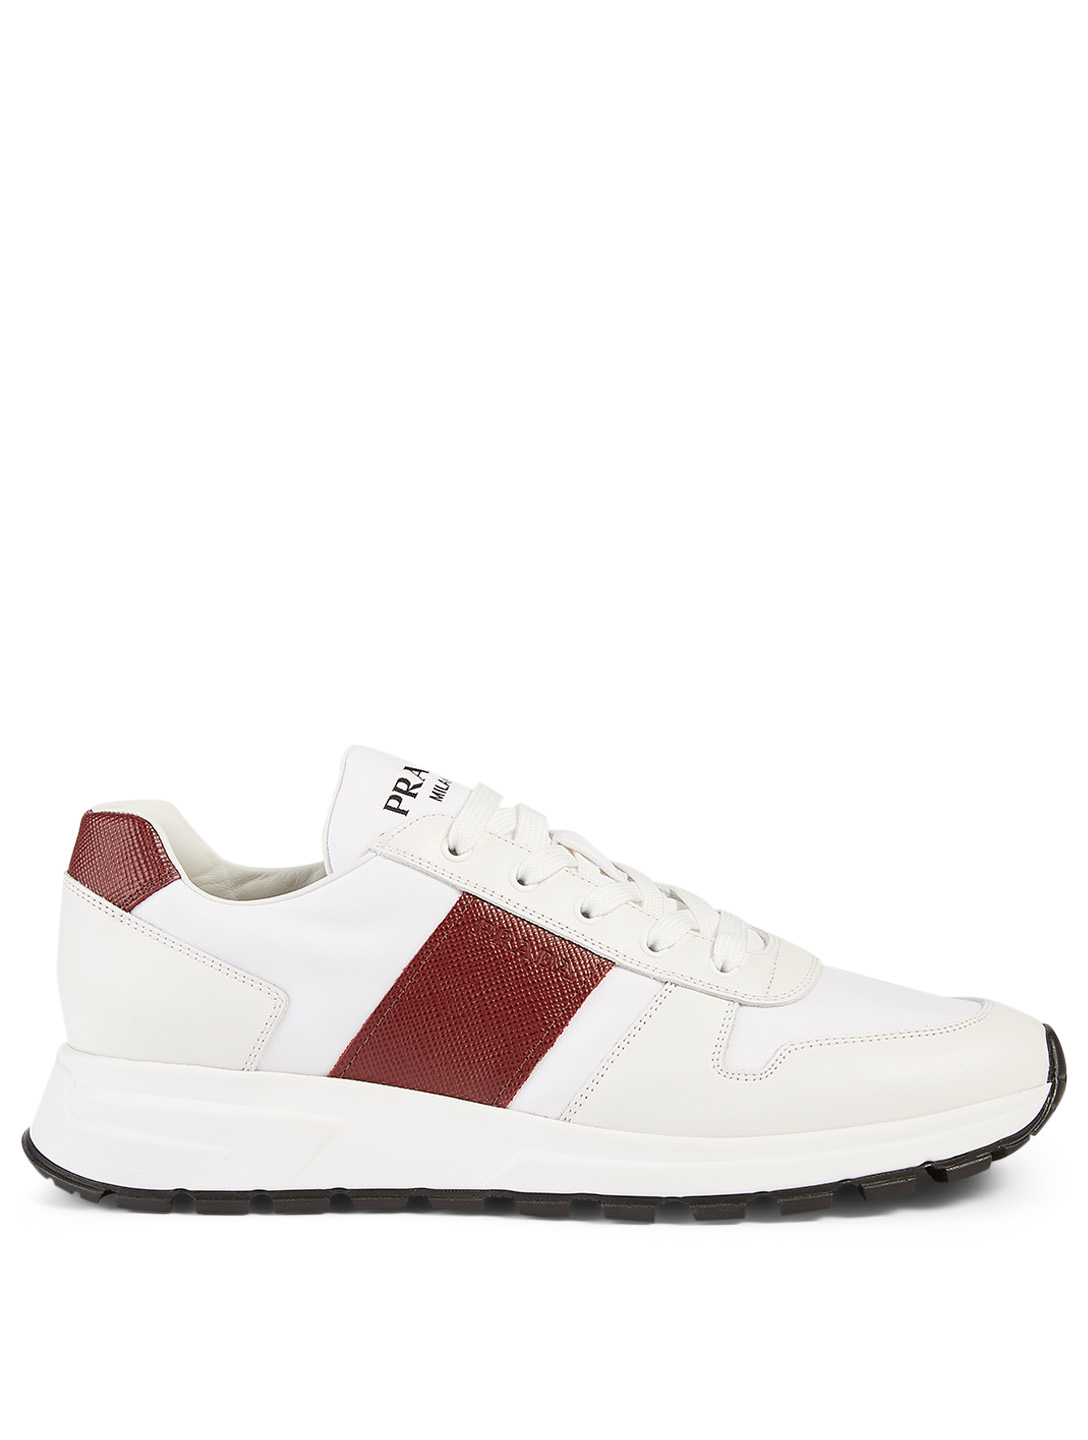 PRADA Nylon And Leather Sneakers Men's White